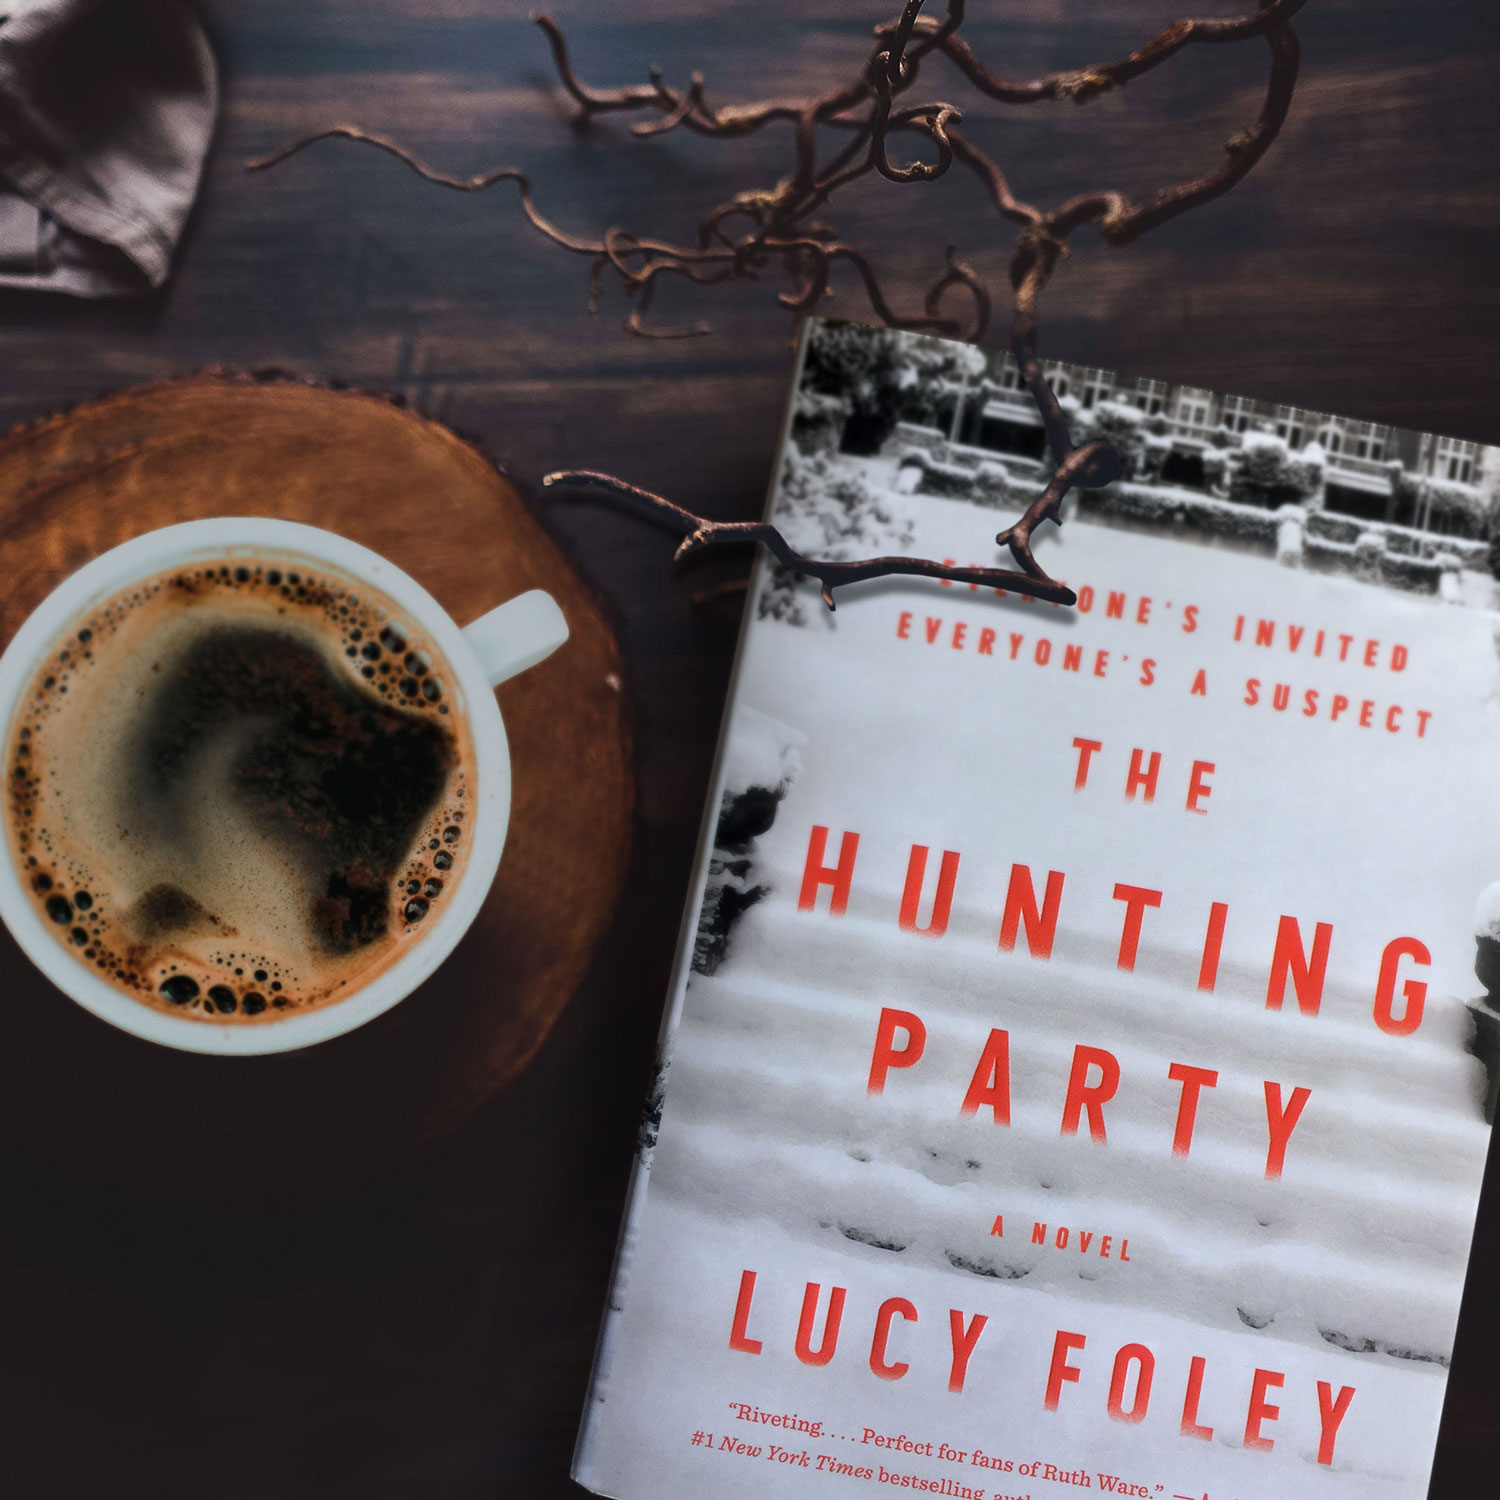 Book Review for THE HUNTING PARTY by Lucy Foley